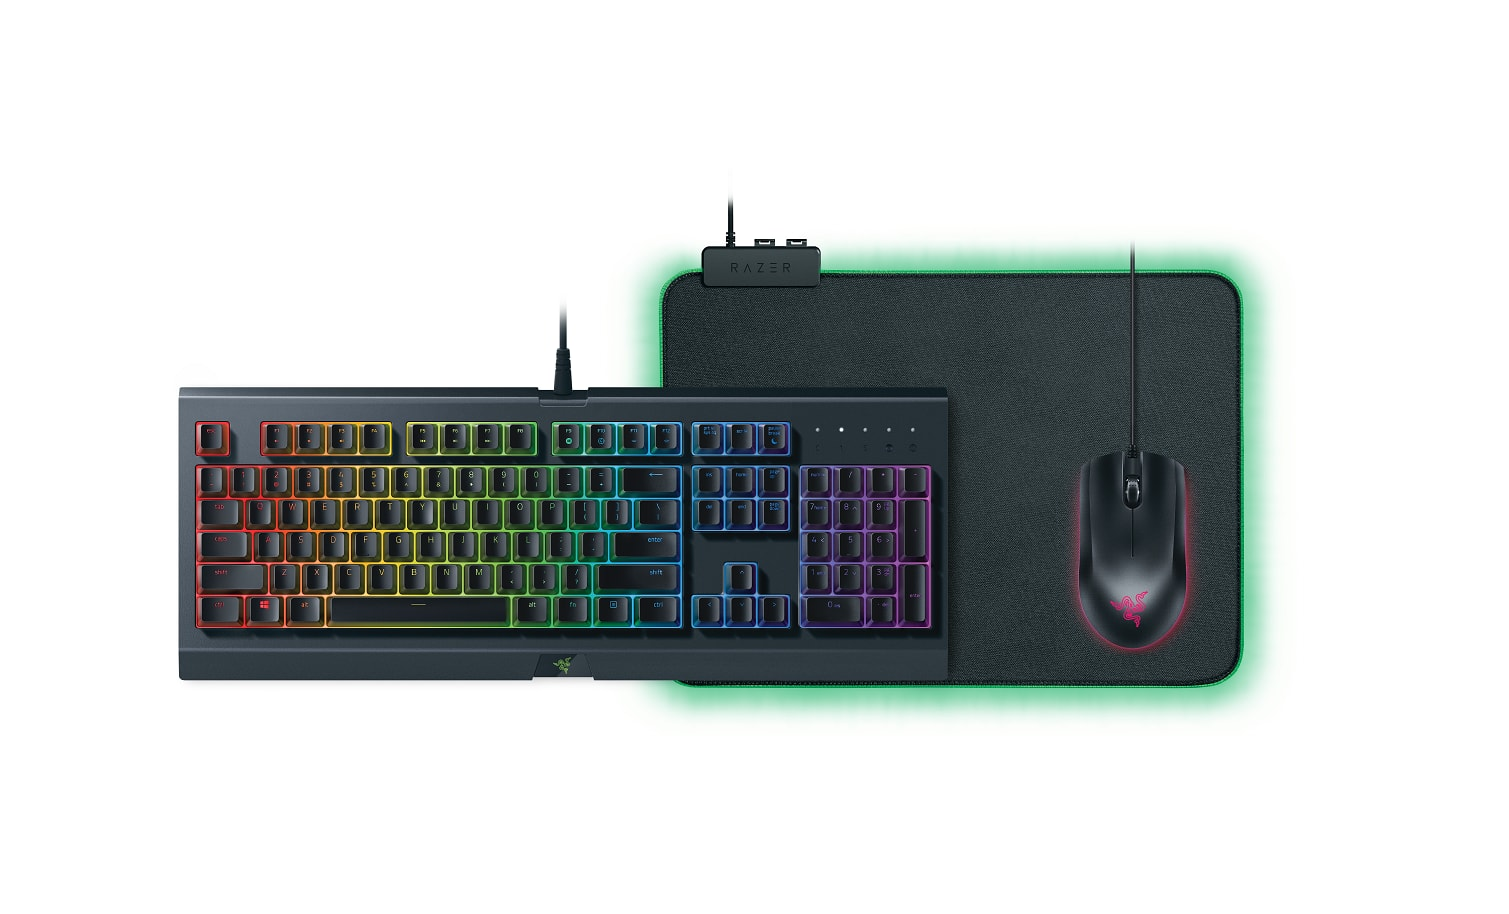 Razer Holiday Chroma Bundle - Includes Cynosa Chroma Gaming Keyboard, Abyssus Essential Gaming Mouse, and Goliathus Chroma Gaming Mouse Pad - $69